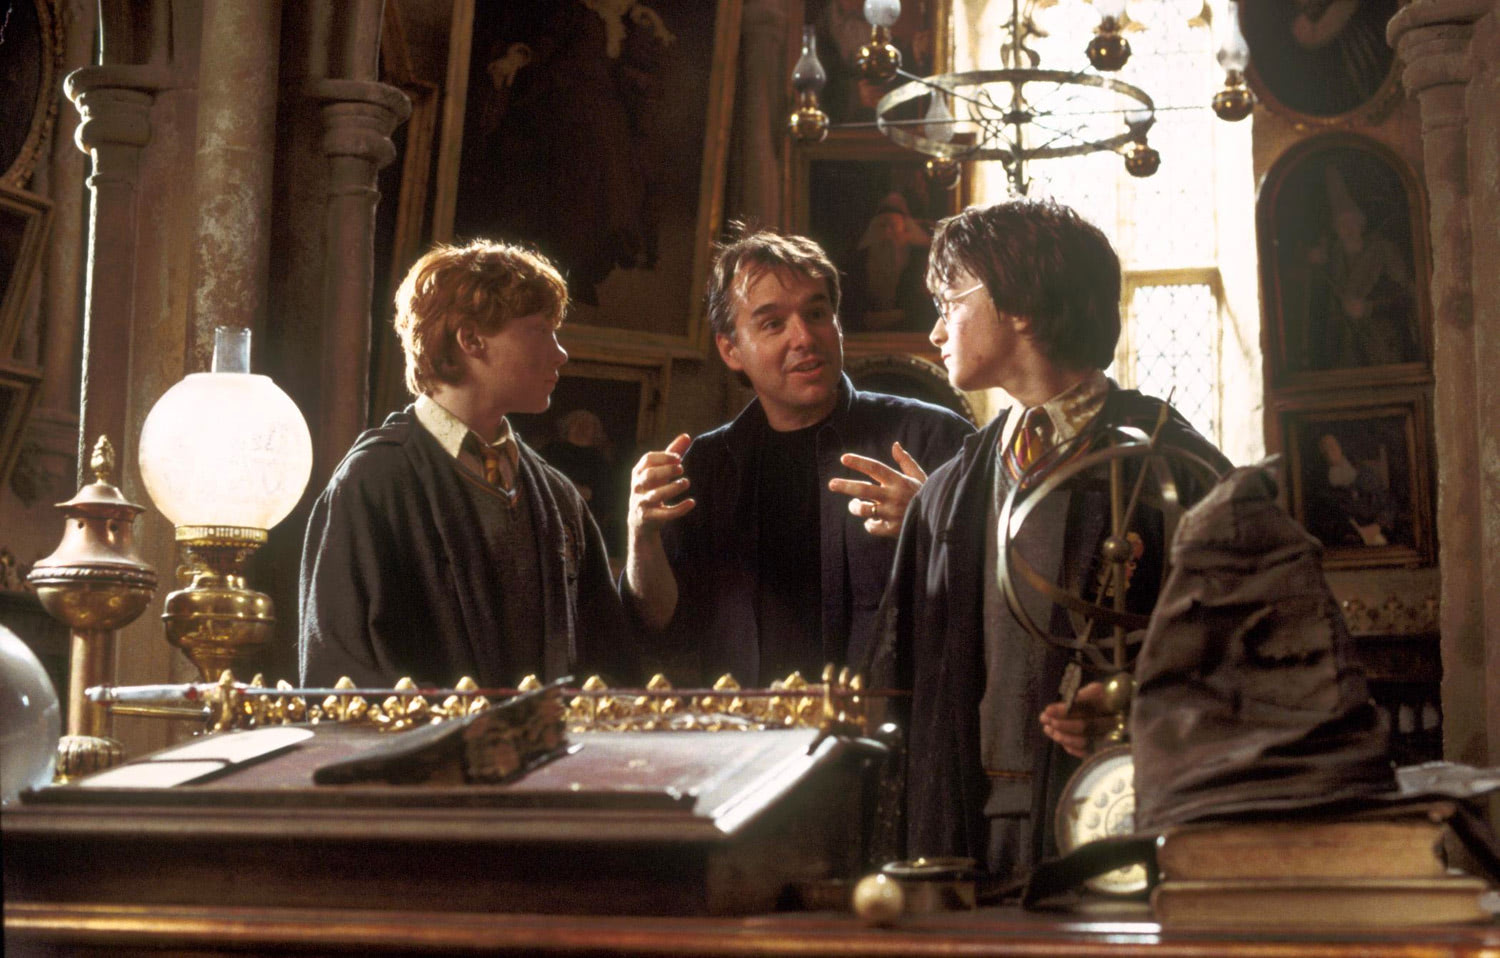 Chris Columbus directs Rupert Grint and Dan Radcliffe